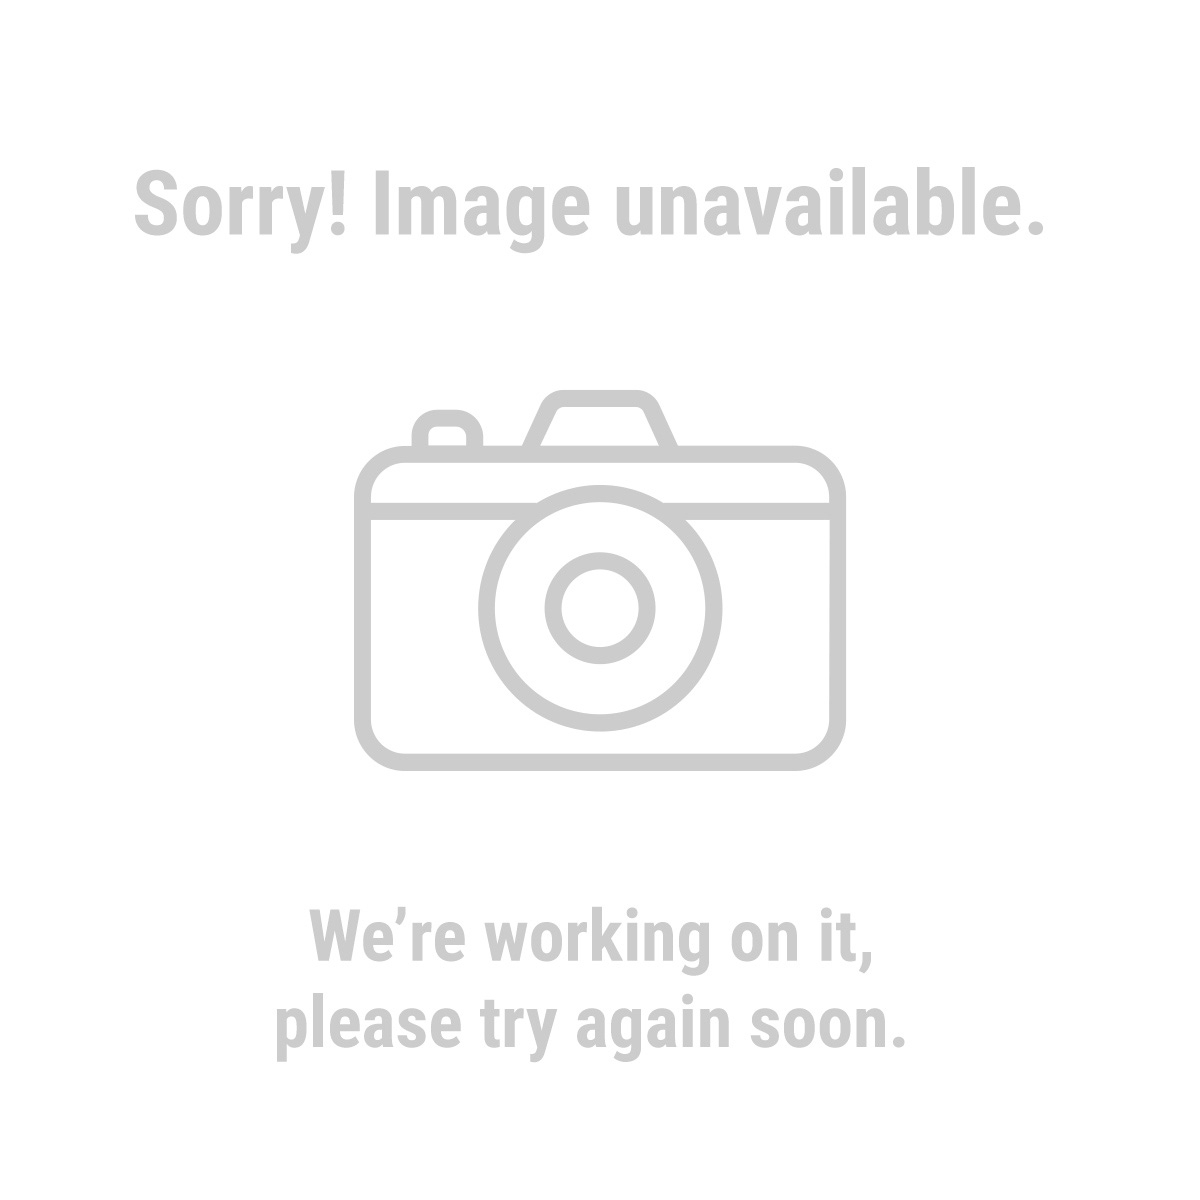 30 Ft Retractable Cord Reel With Triple Tap